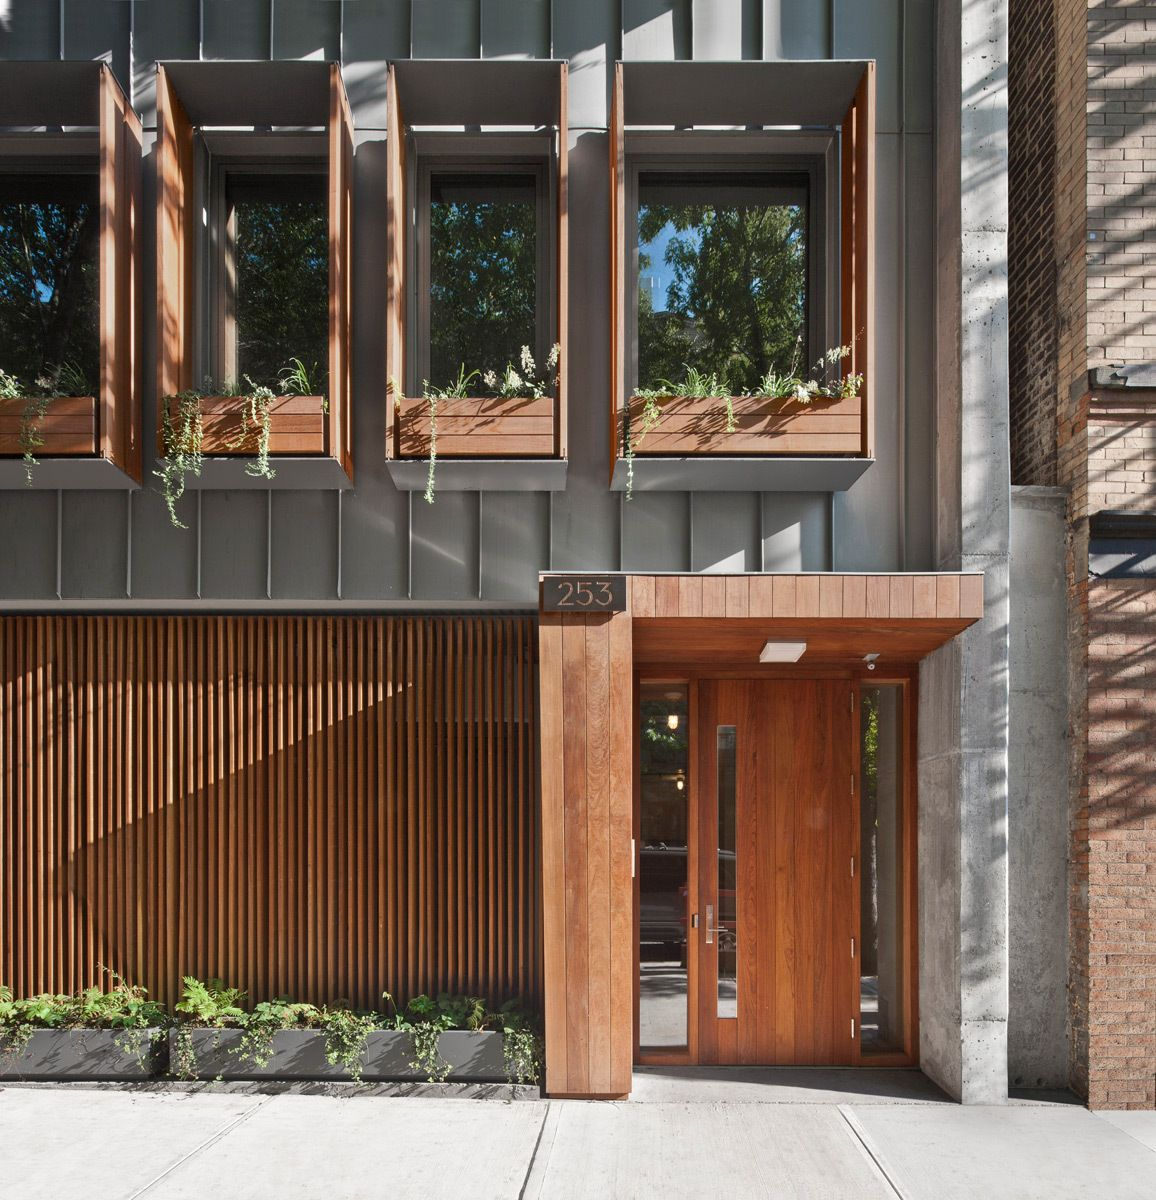 ShowCase: 253 Pacific Street | Archinect